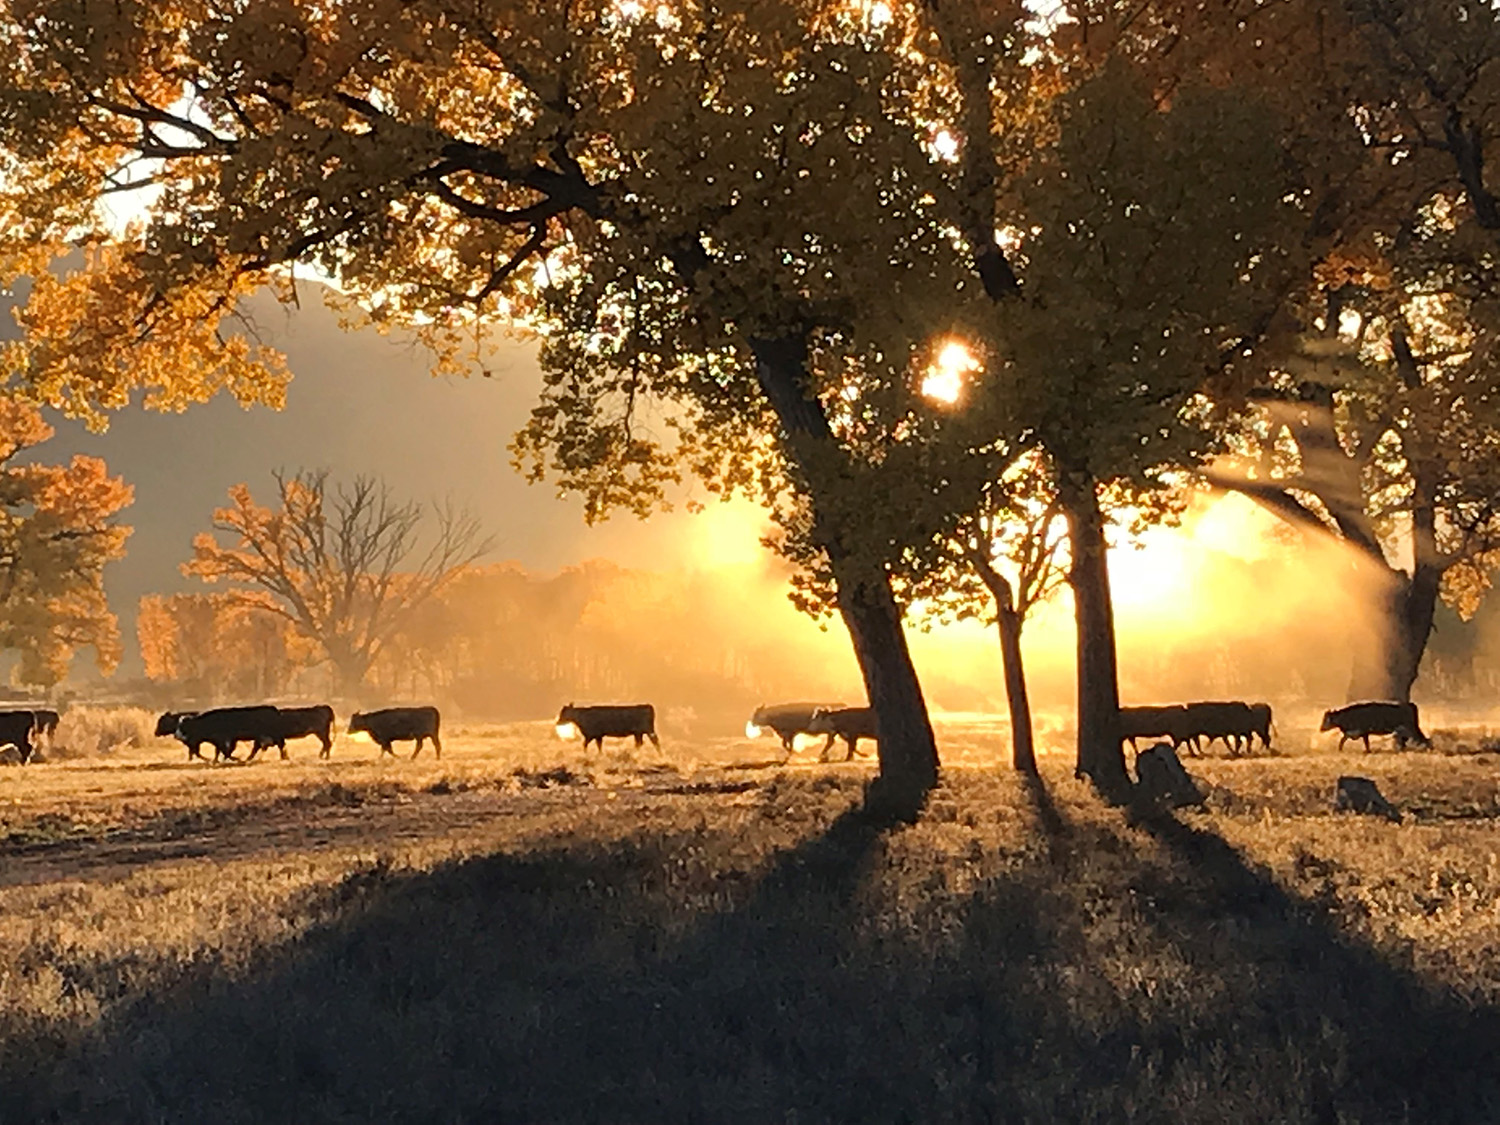 Sunrise in cow field